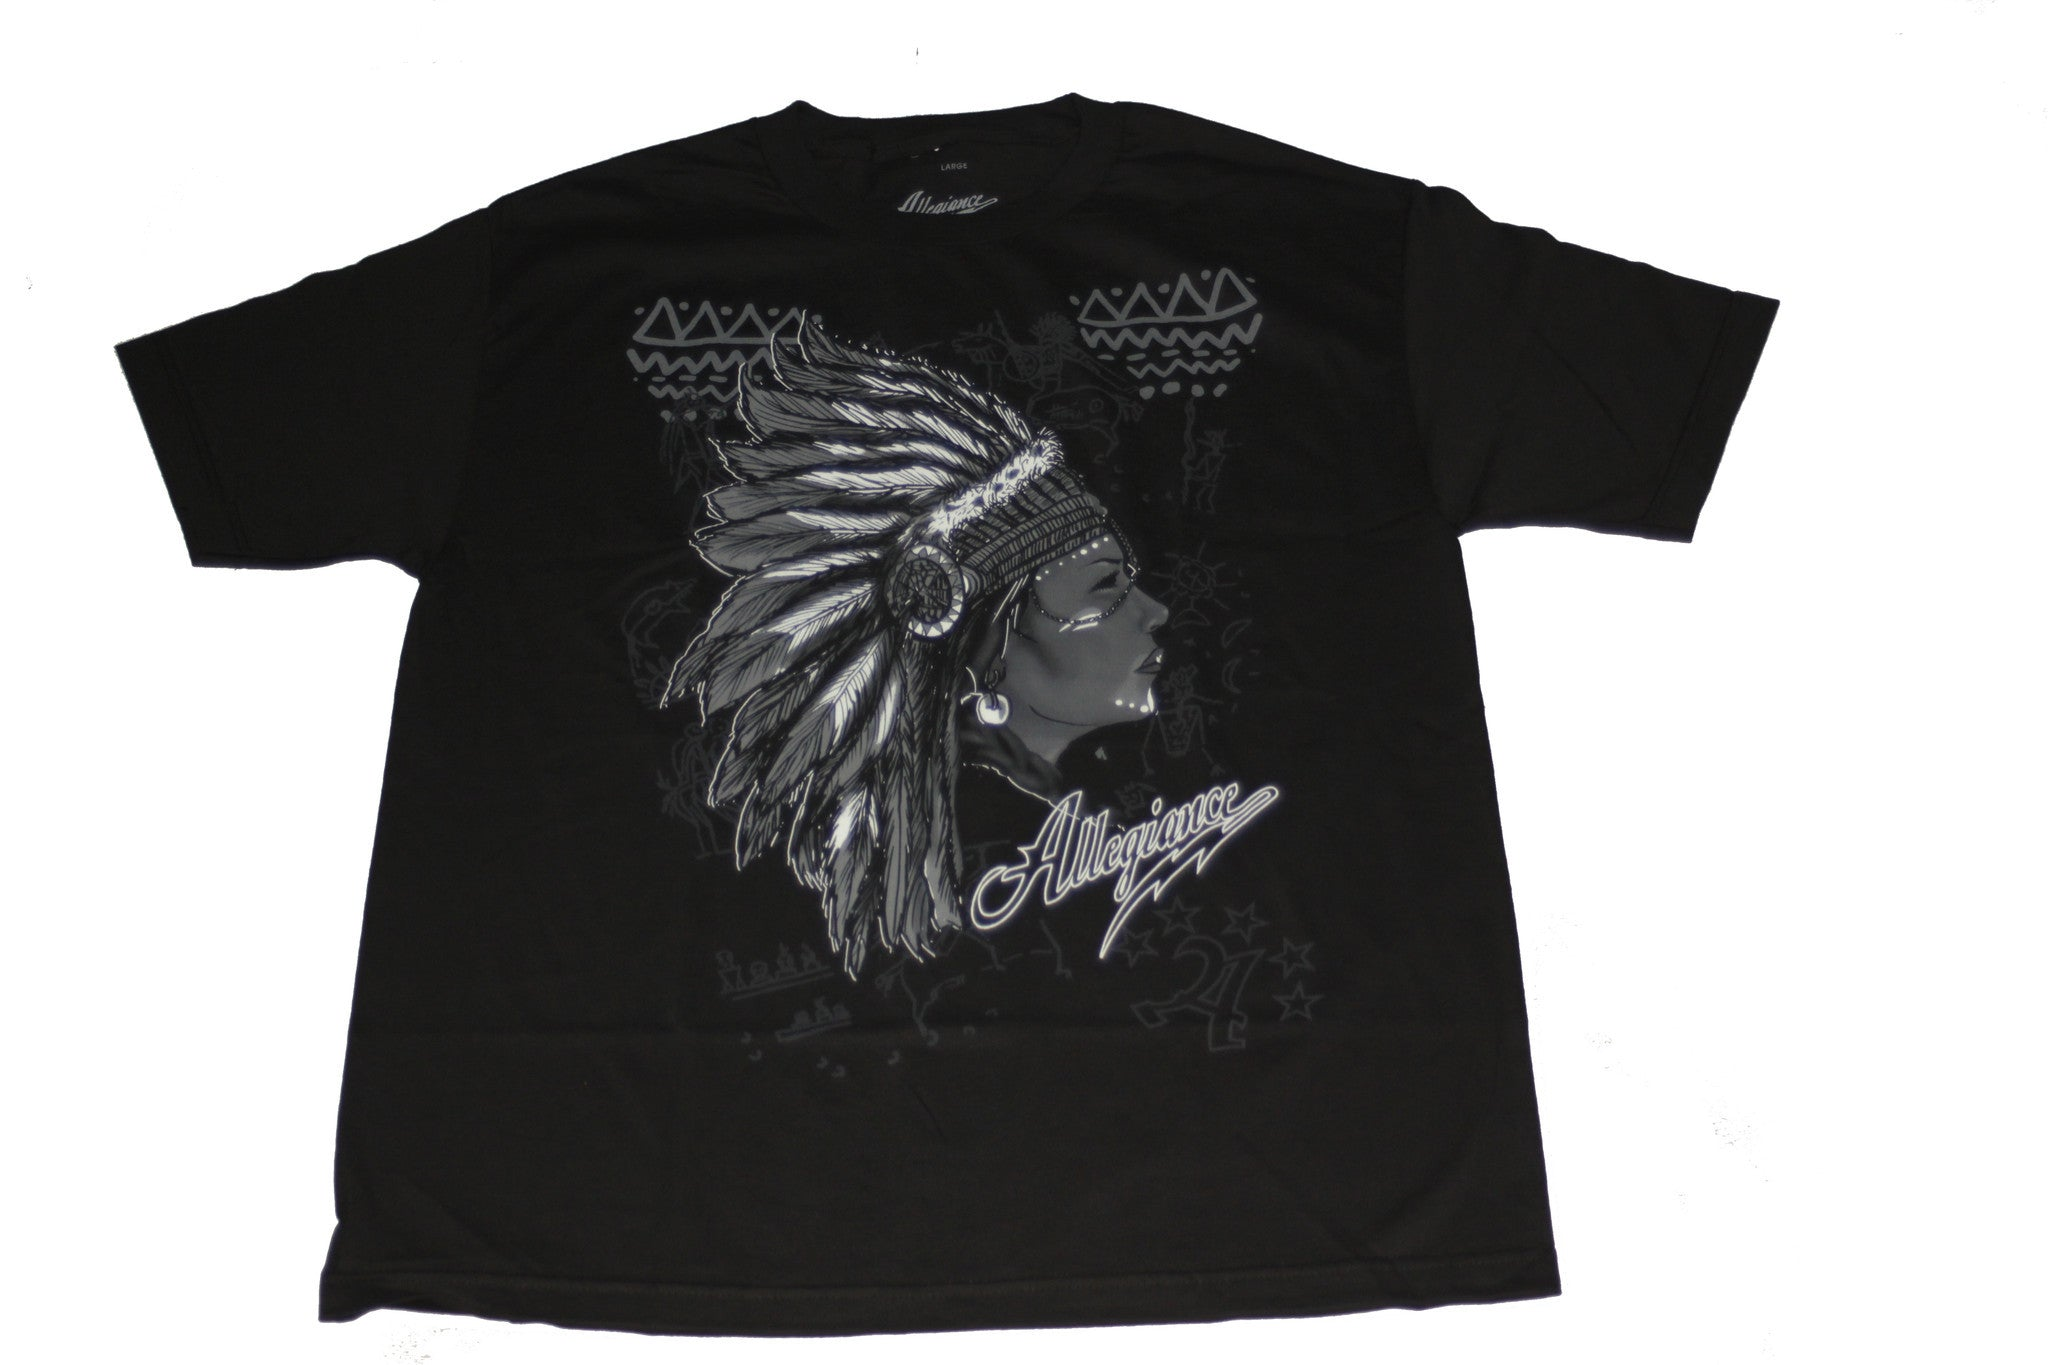 Chiefin - Allegiance Clothing - 3